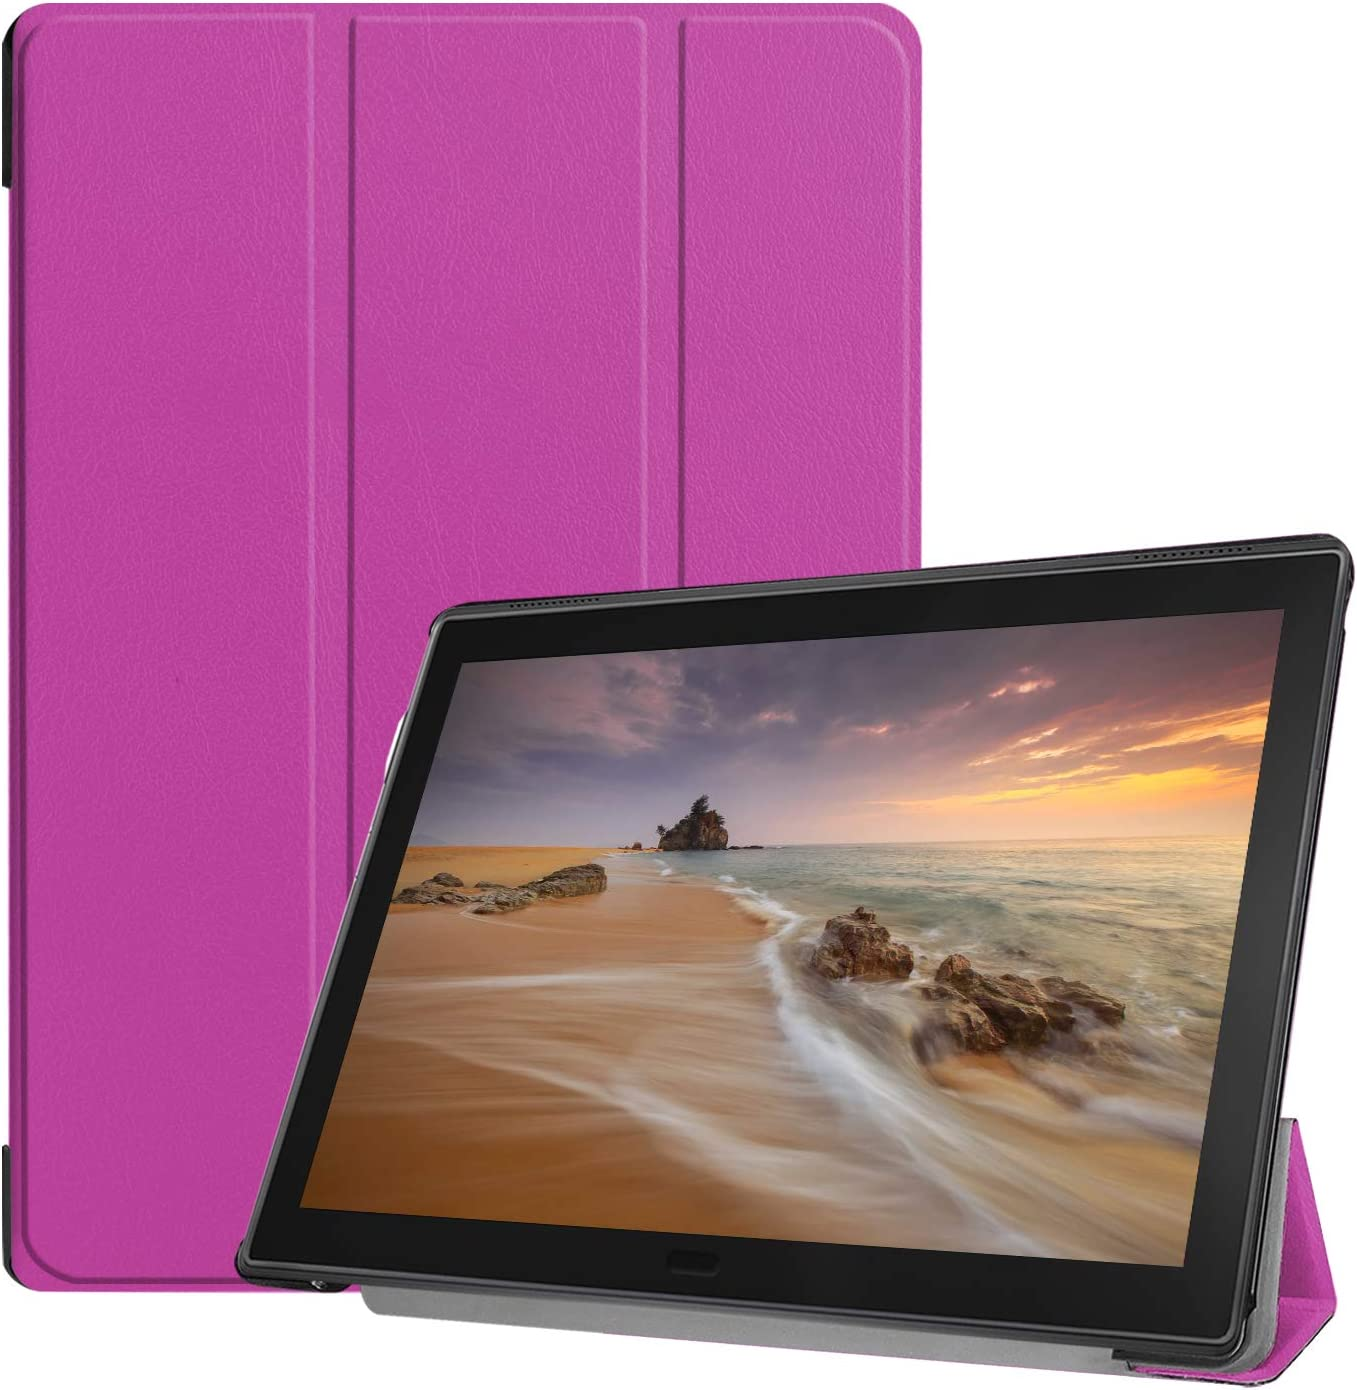 Epicgadget Case for Lenovo Tab E10 (TB-X104F), Slim Lightweight Tri fold Stand Cover Case for Lenovo Tablet 2018 Tab E 10 10.1 Inch Display (Purple)